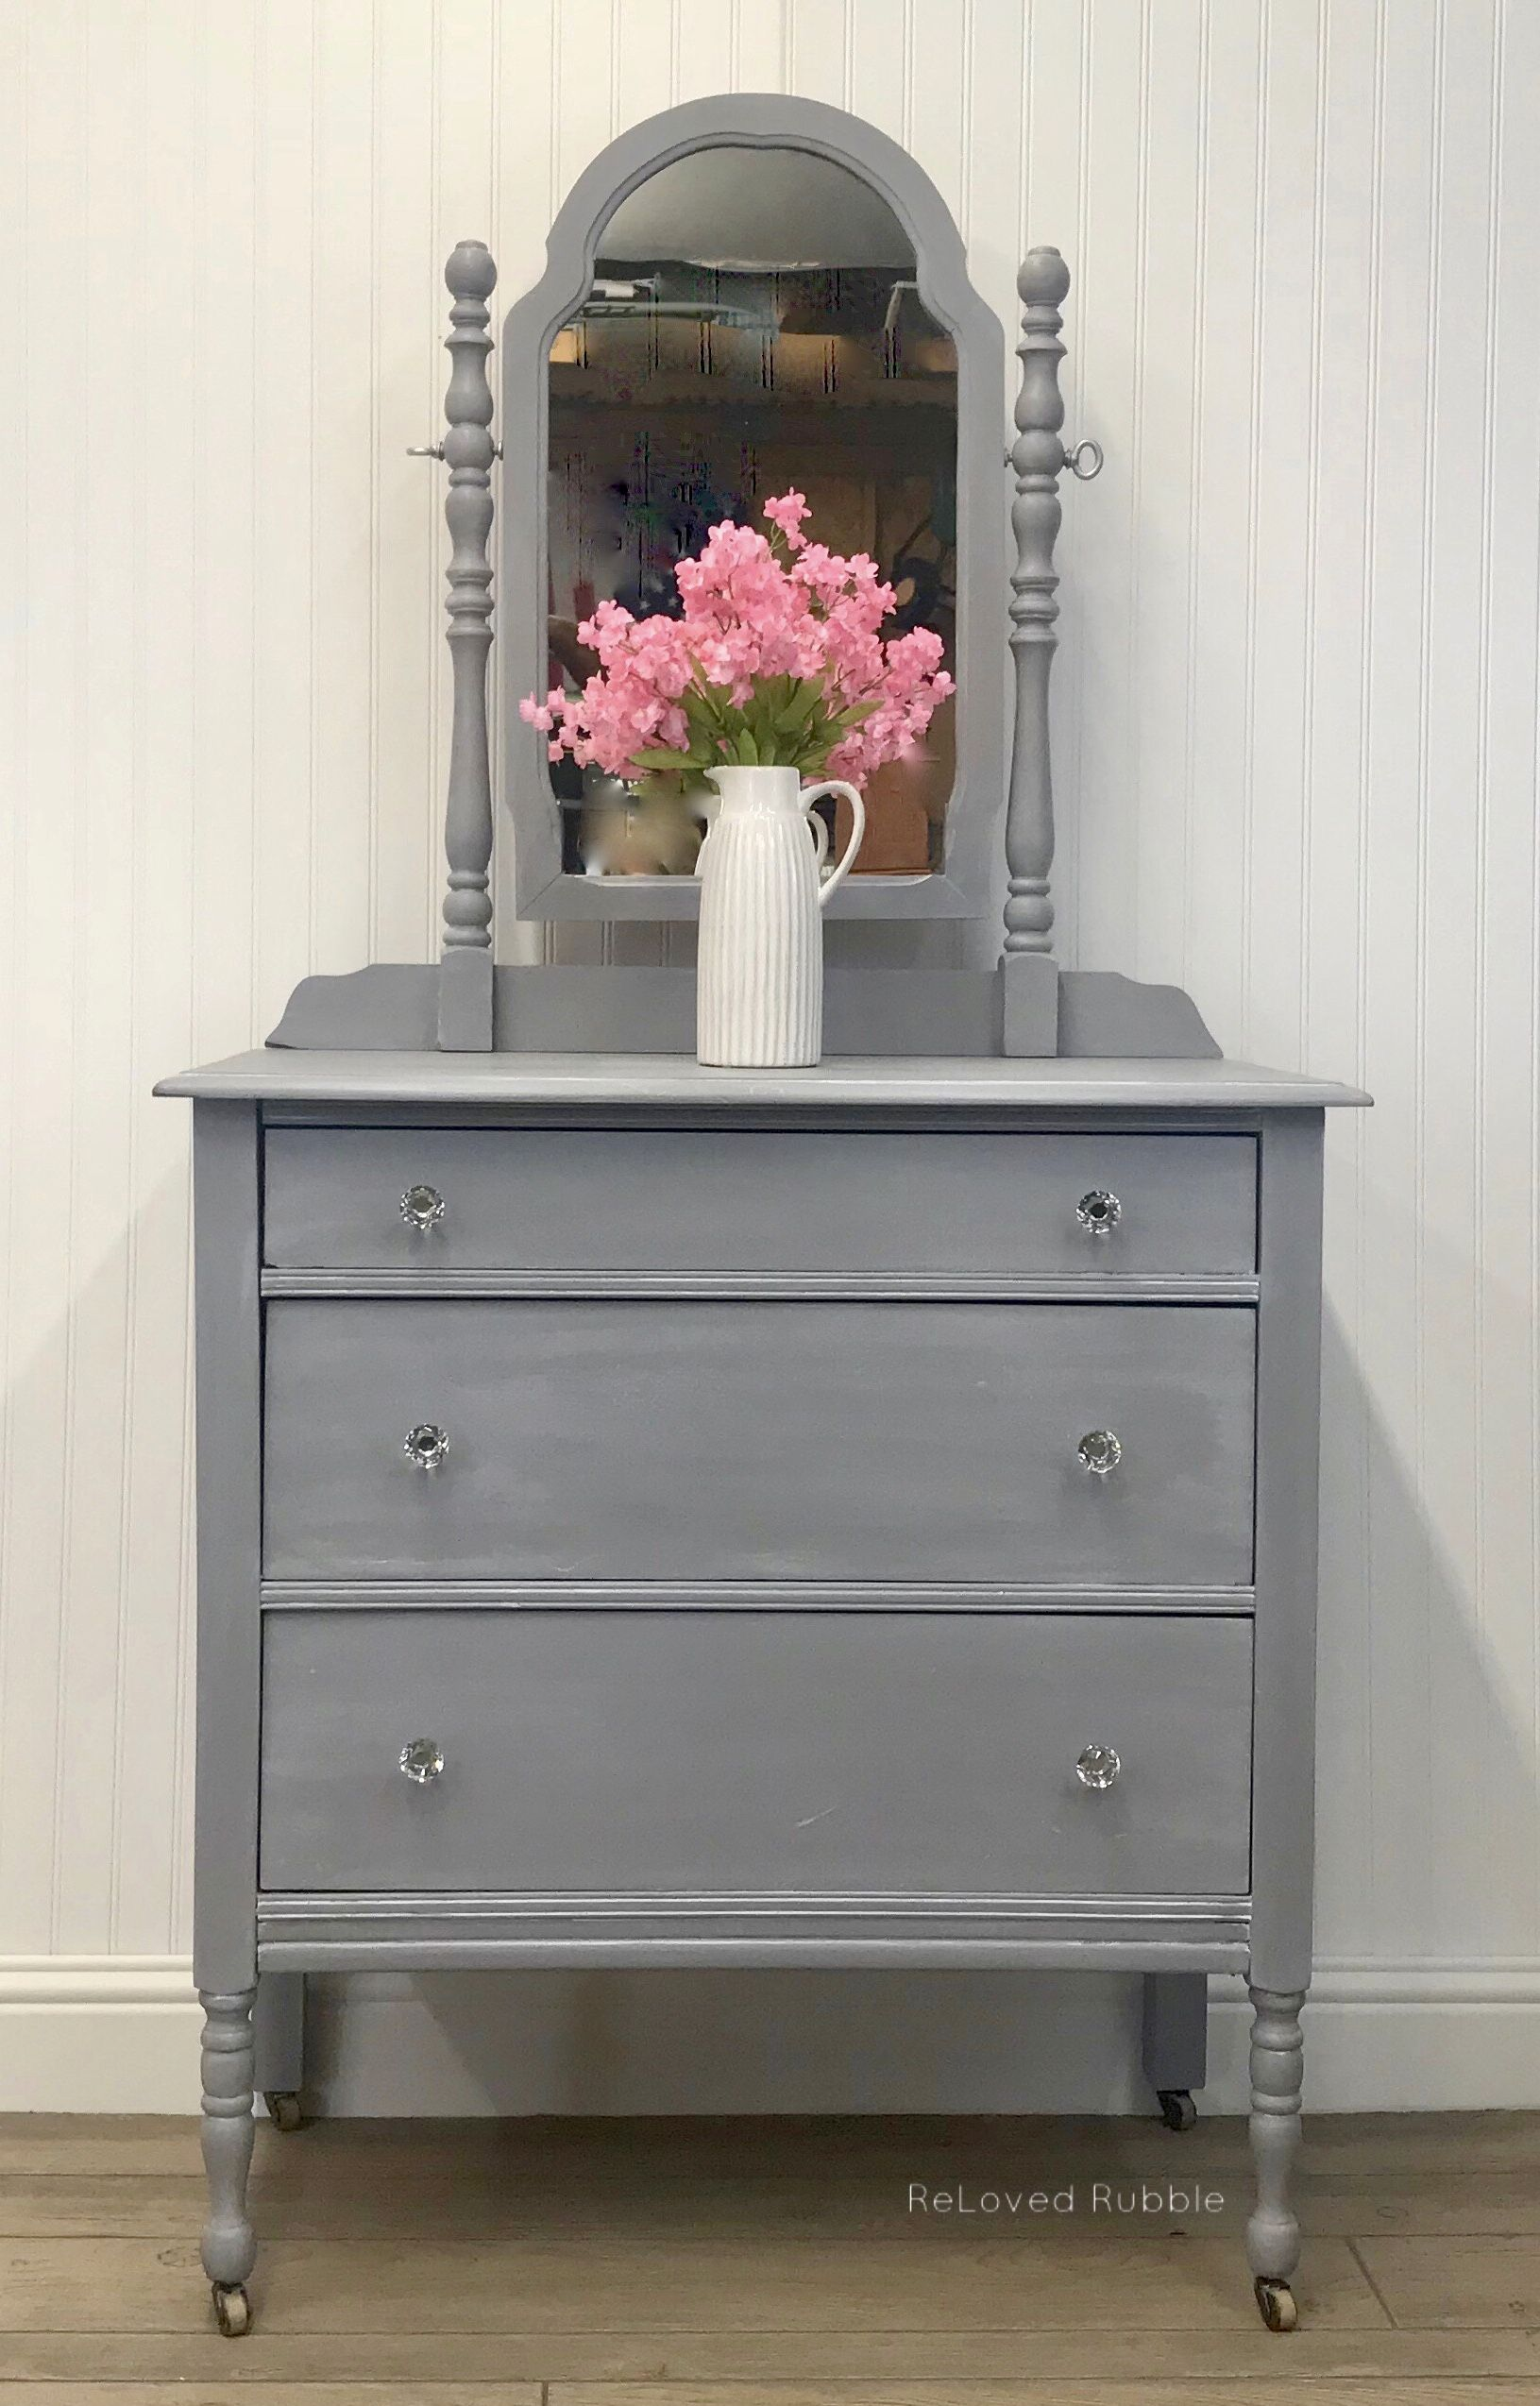 Vintage Dresser Refinished In Custom Mix Of General Finishes Seagull Gray And Driftwood Plus Their Winter W Vintage Dressers Dresser Refinish Painted Furniture [ 2548 x 1631 Pixel ]